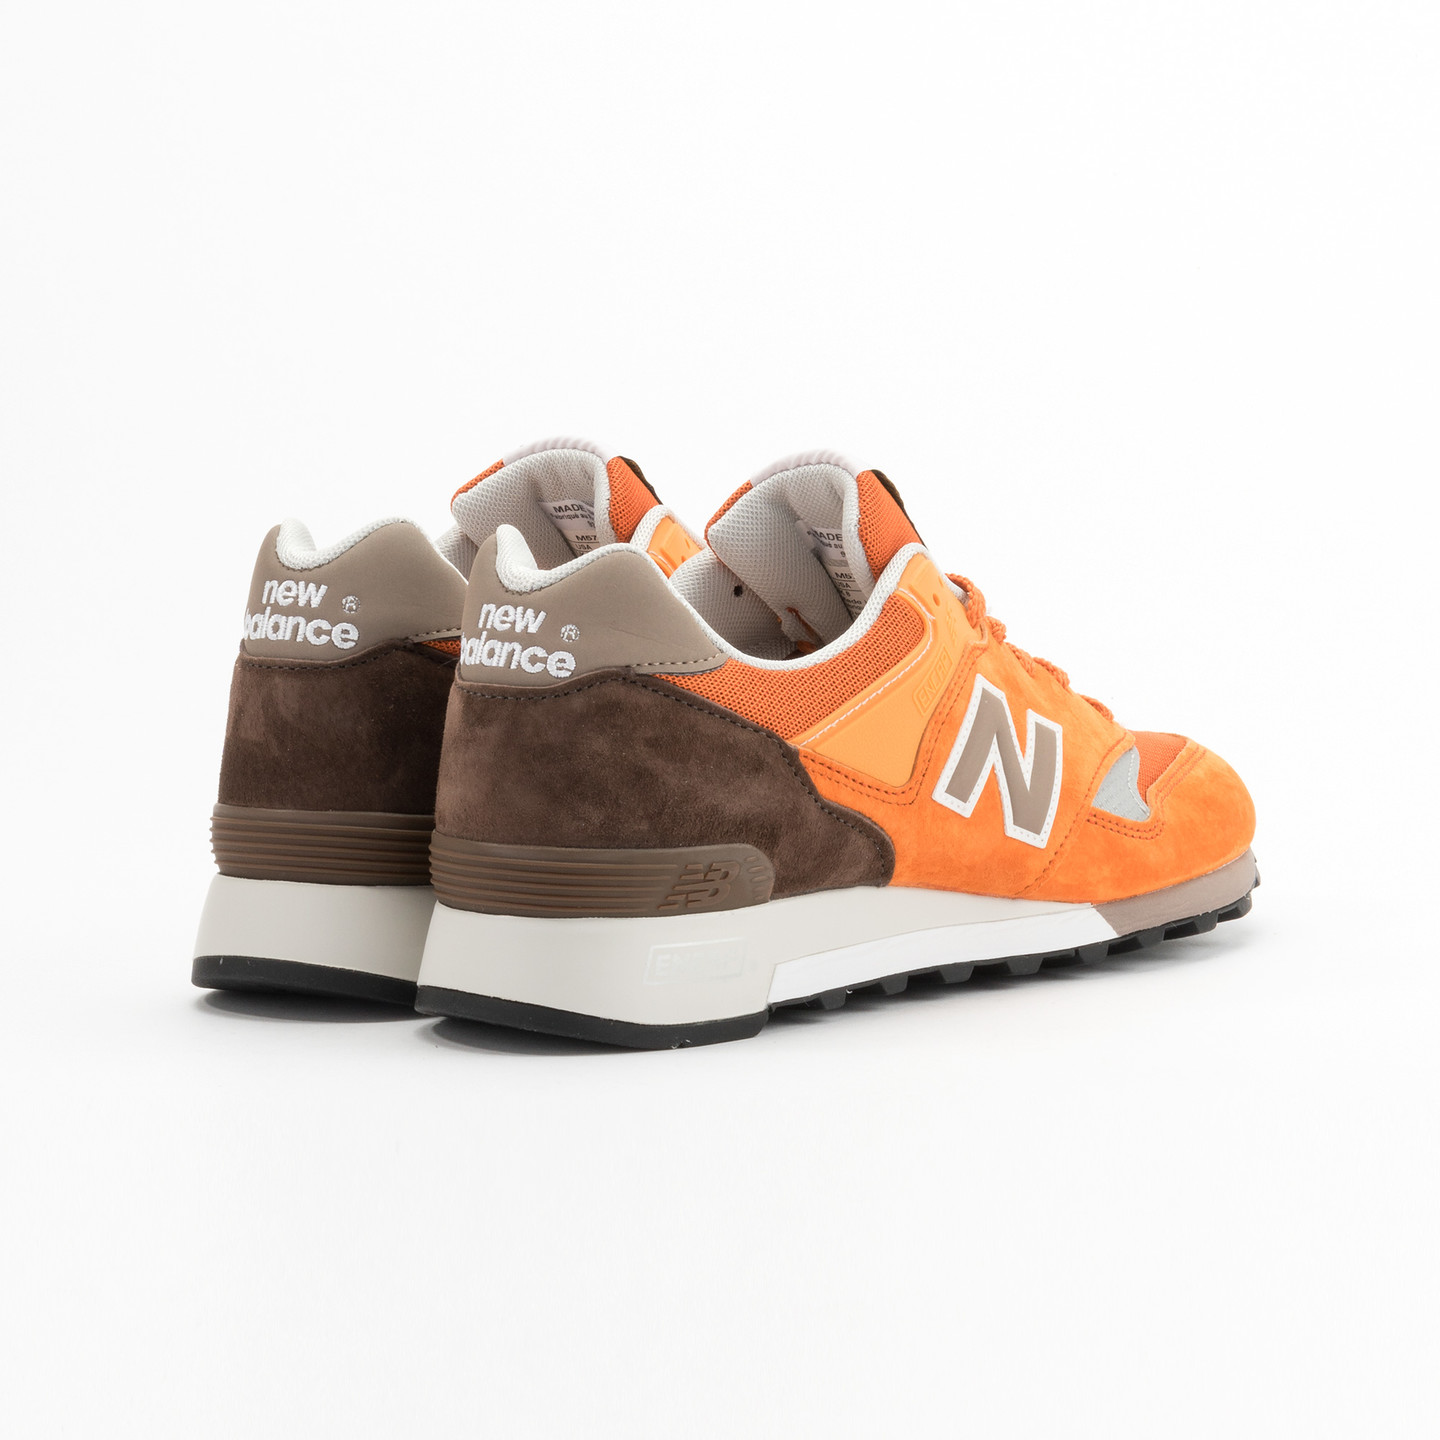 New Balance M577 ETO - Made in England Orange / Brown M577ETO-44.5